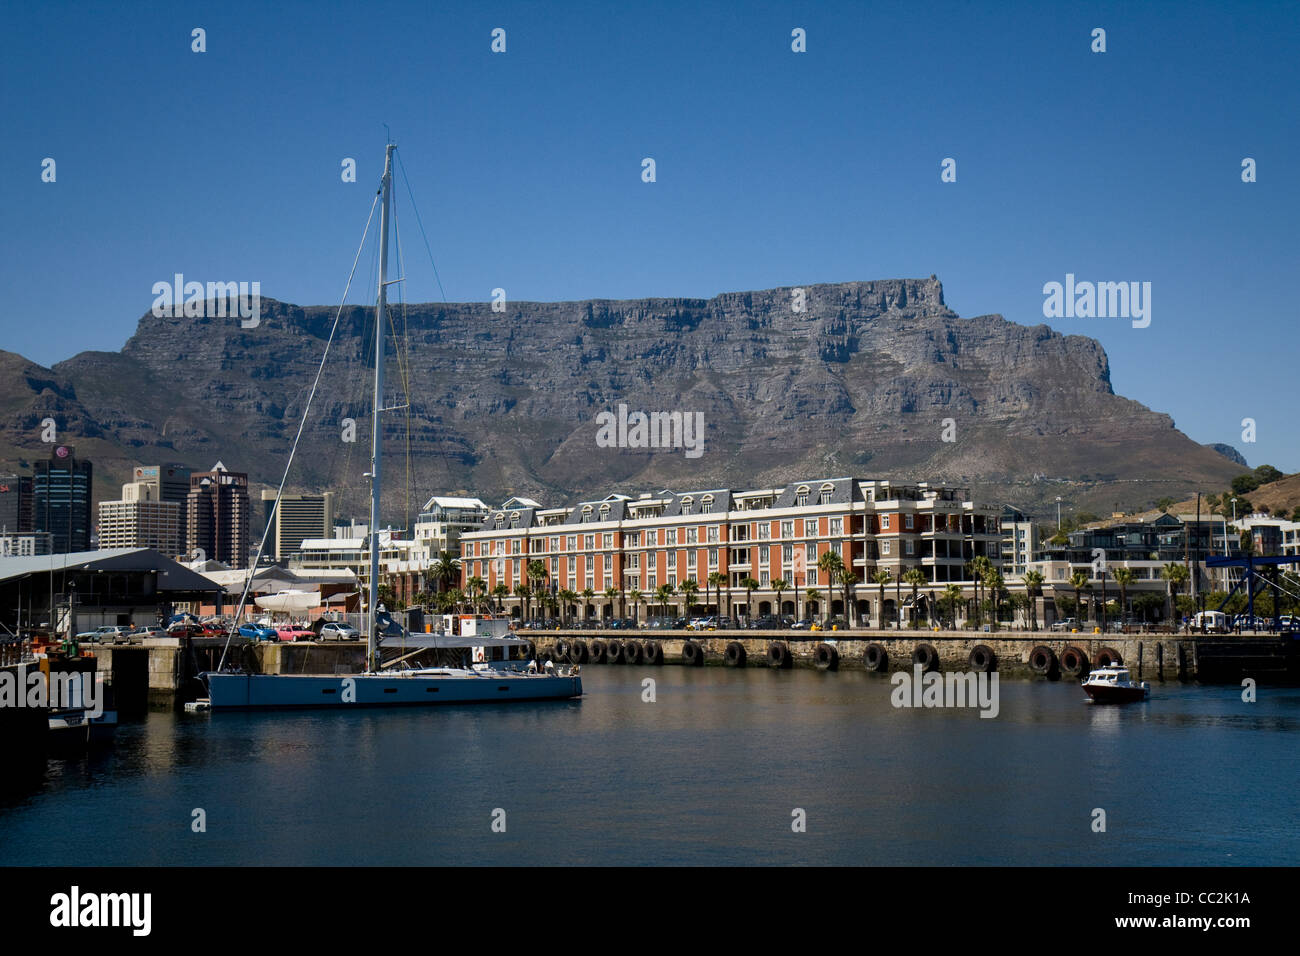 A view of Table Mountain from the waterfront - Stock Image